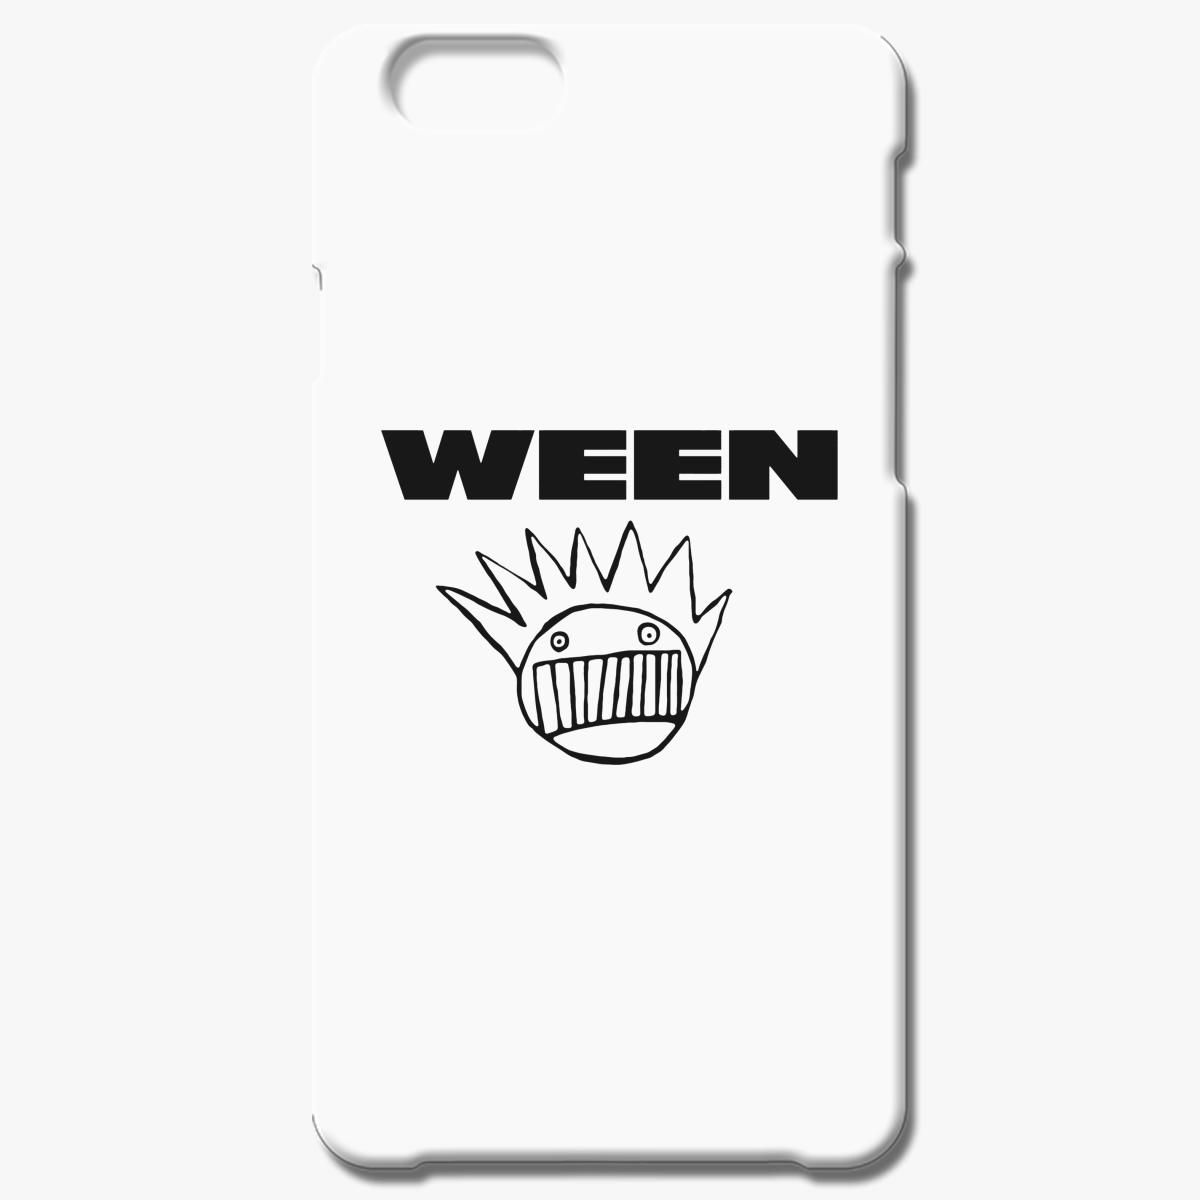 Ween Band Logo Iphone 6 6s Case